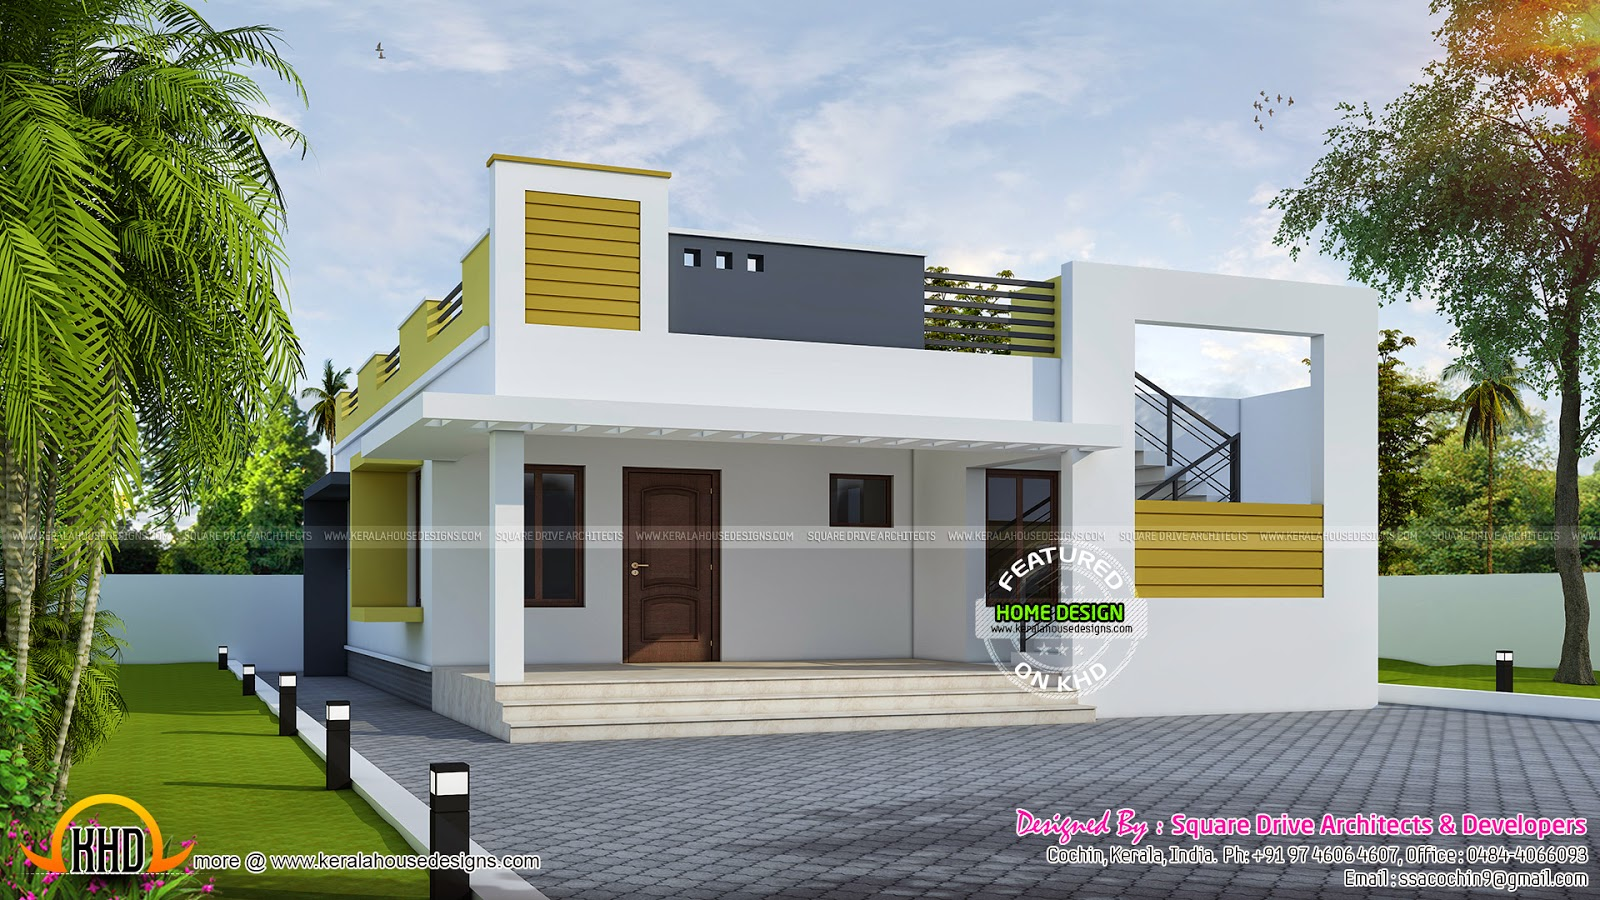 home designs in india elegant house ideas home design ideas home emejing simple indian home designs gallery eddymerckxus eddymerckxus